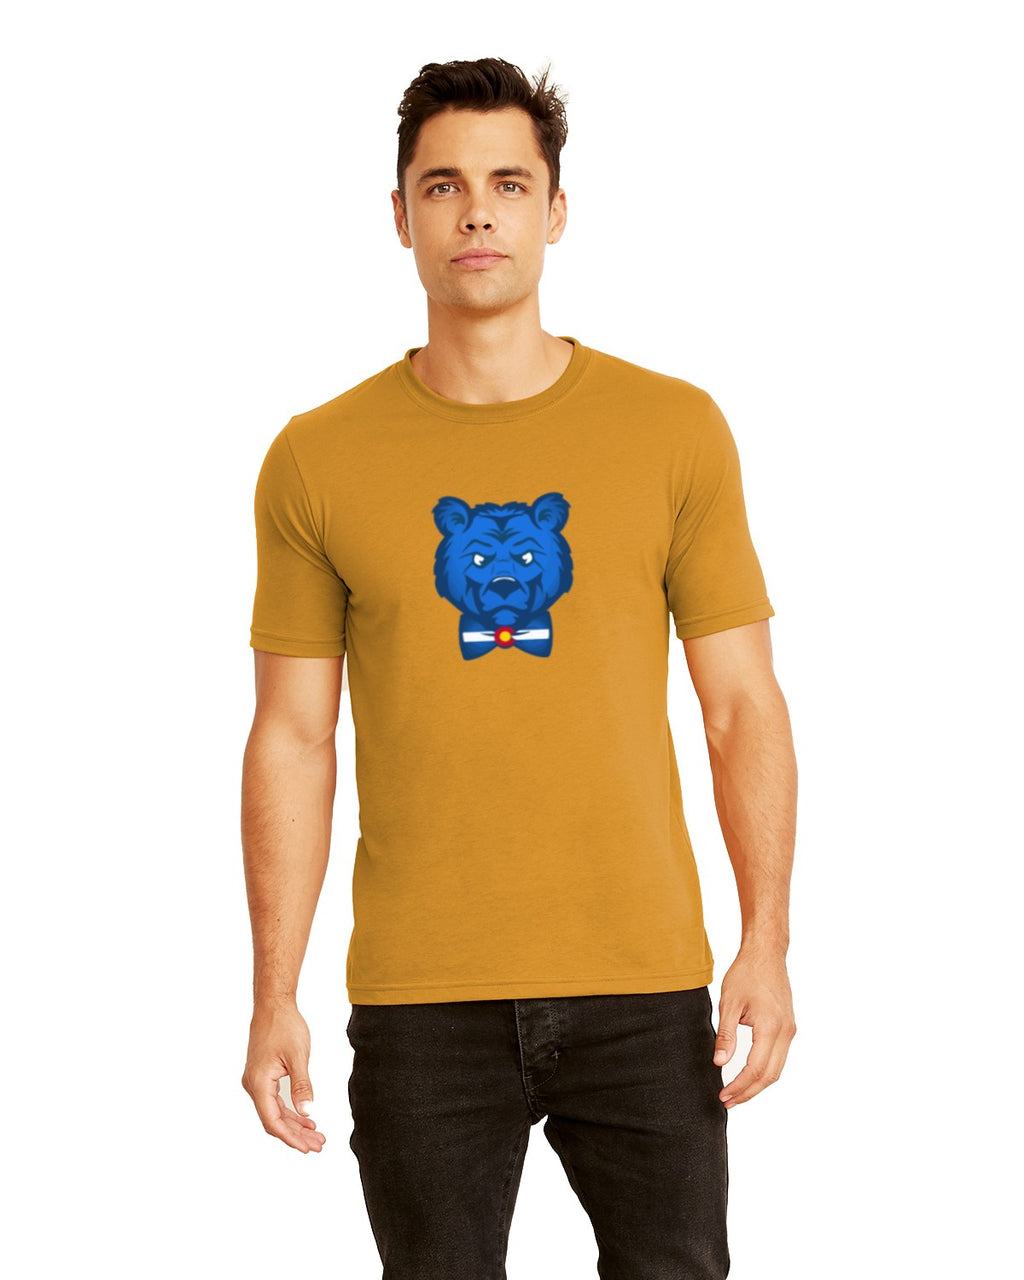 BLUE BEAR Men's Tee